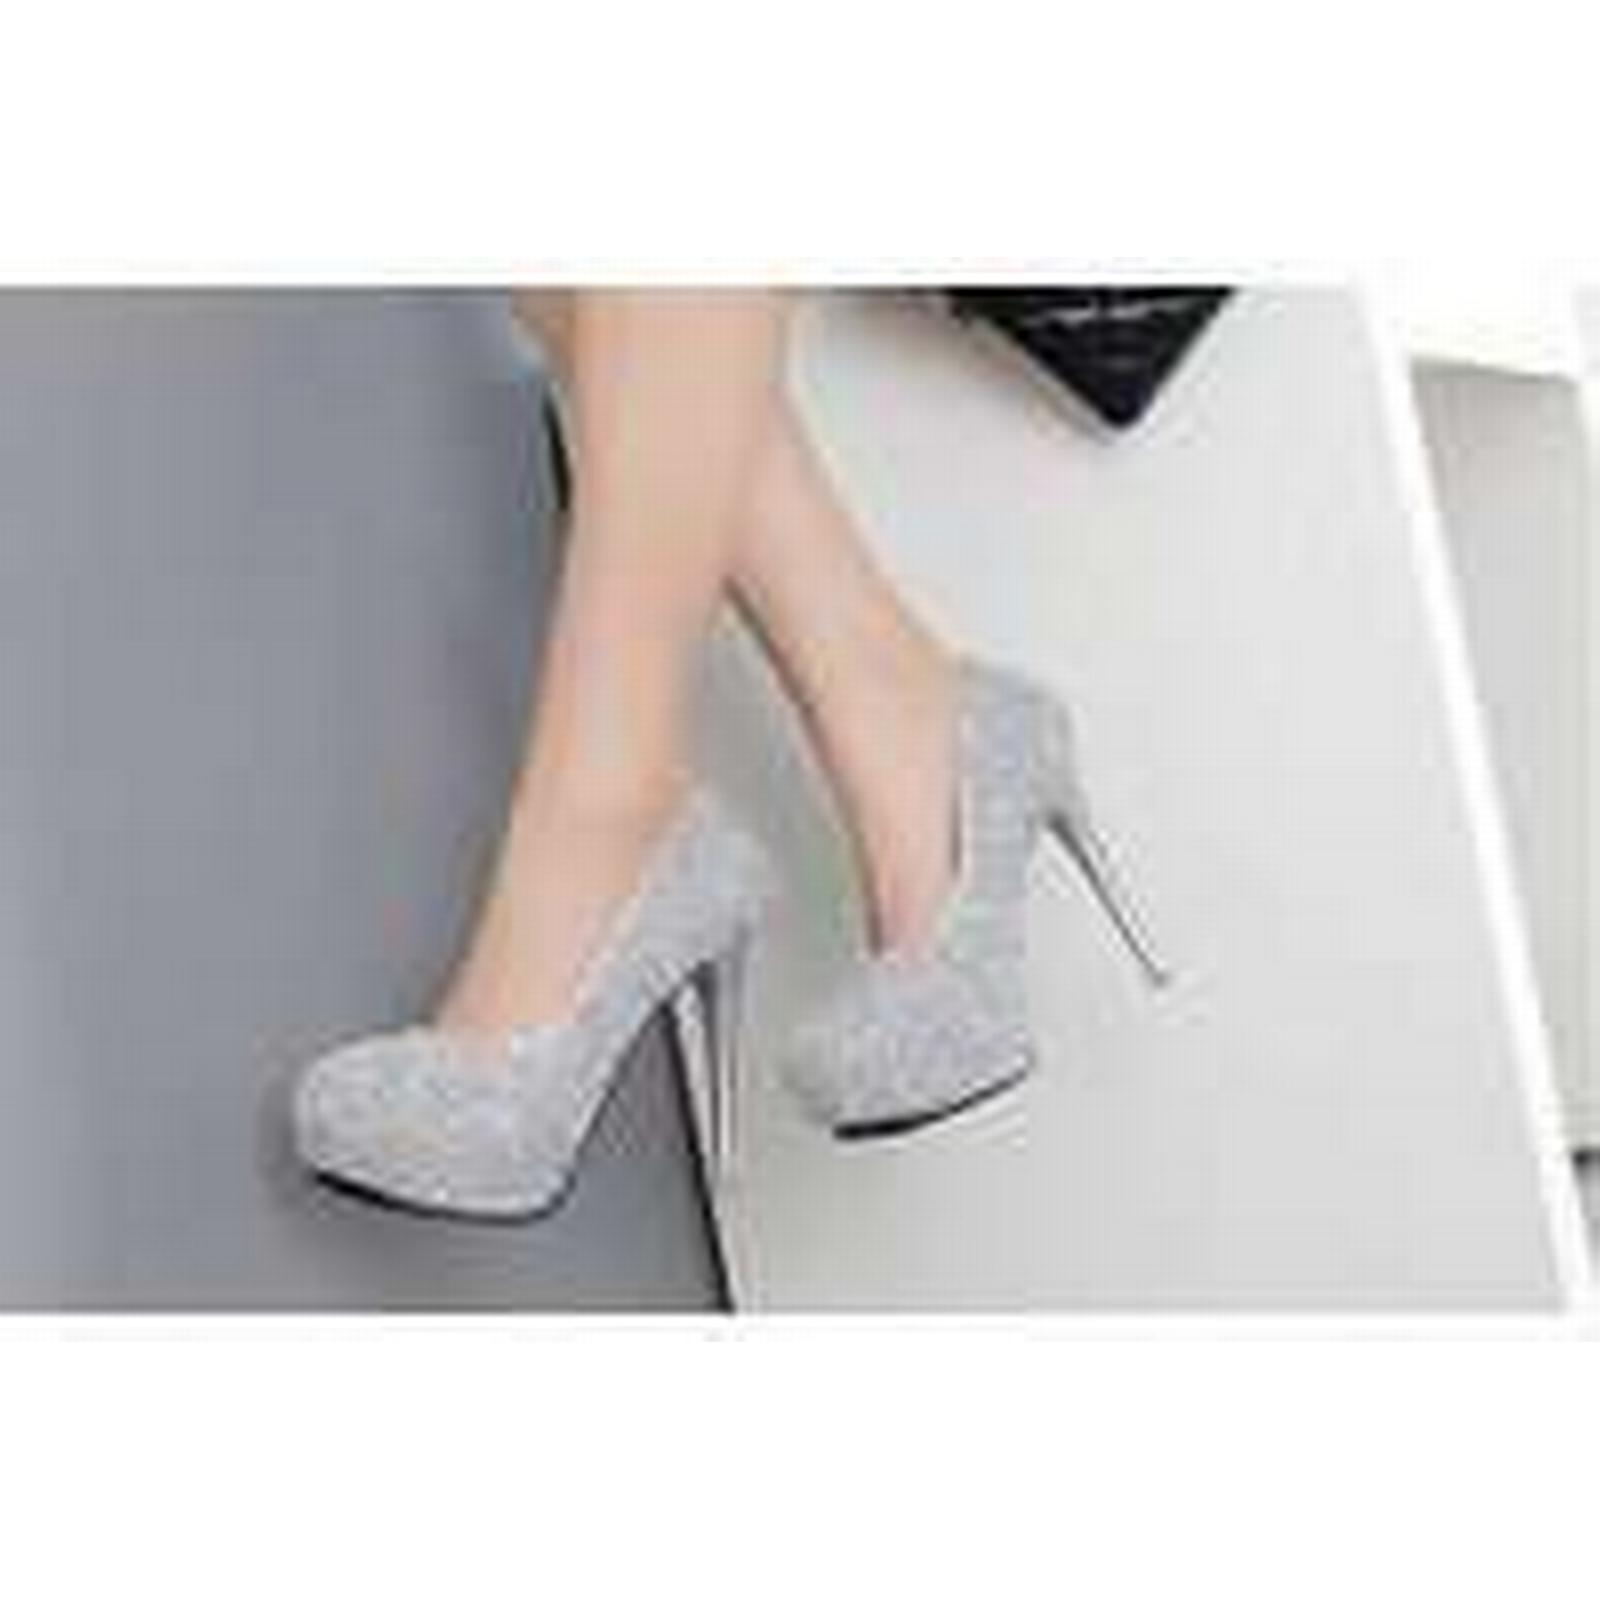 Bonanza (Global) pp230 Elegant rhinestones high-heeled gray pumps, US Size 4-8, gray high-heeled 87065e